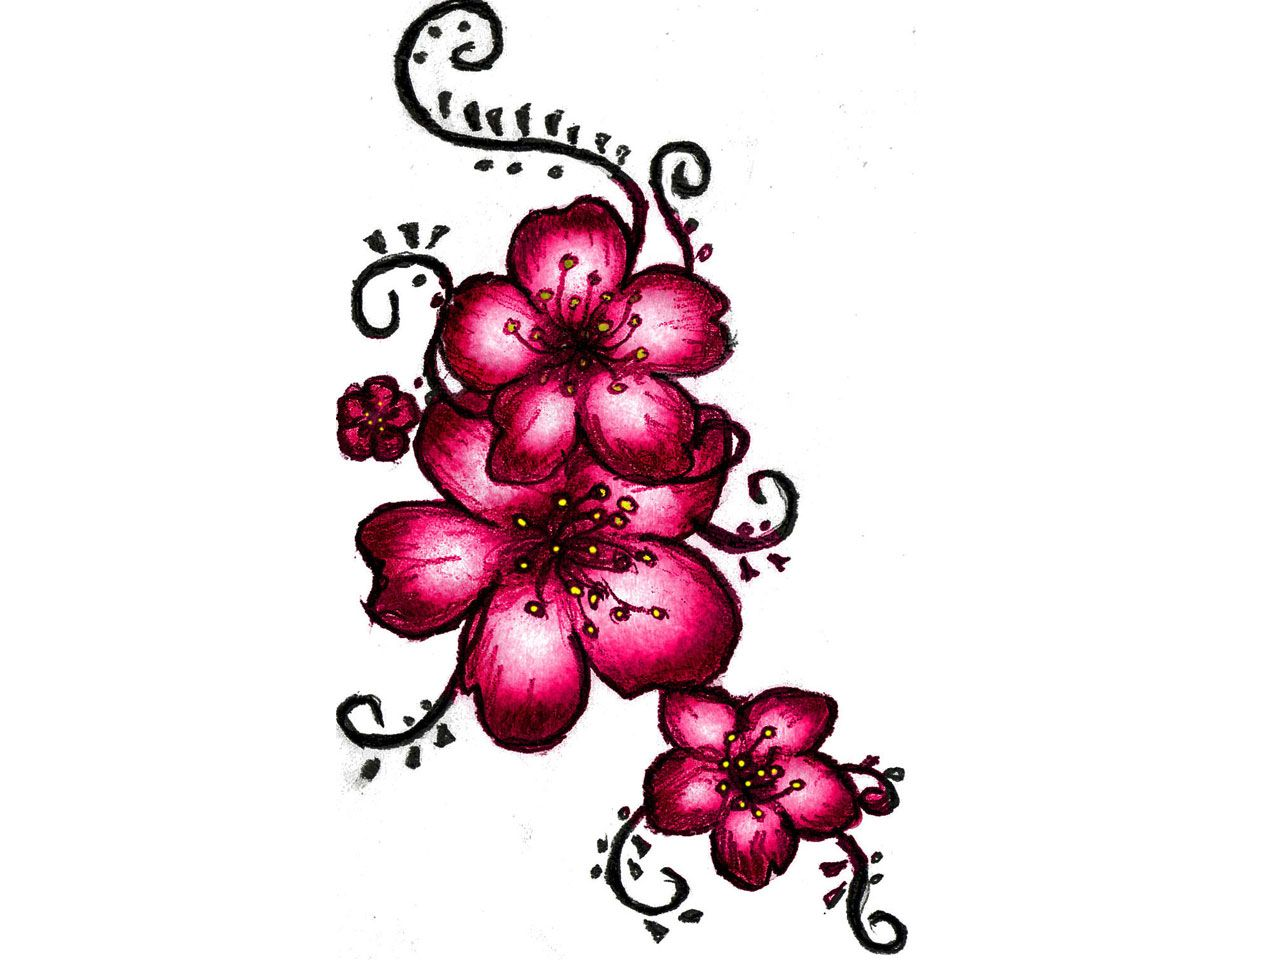 1280x960 Pics For Gt Japanese Cherry Blossom Drawing Tattoo A Good Thread